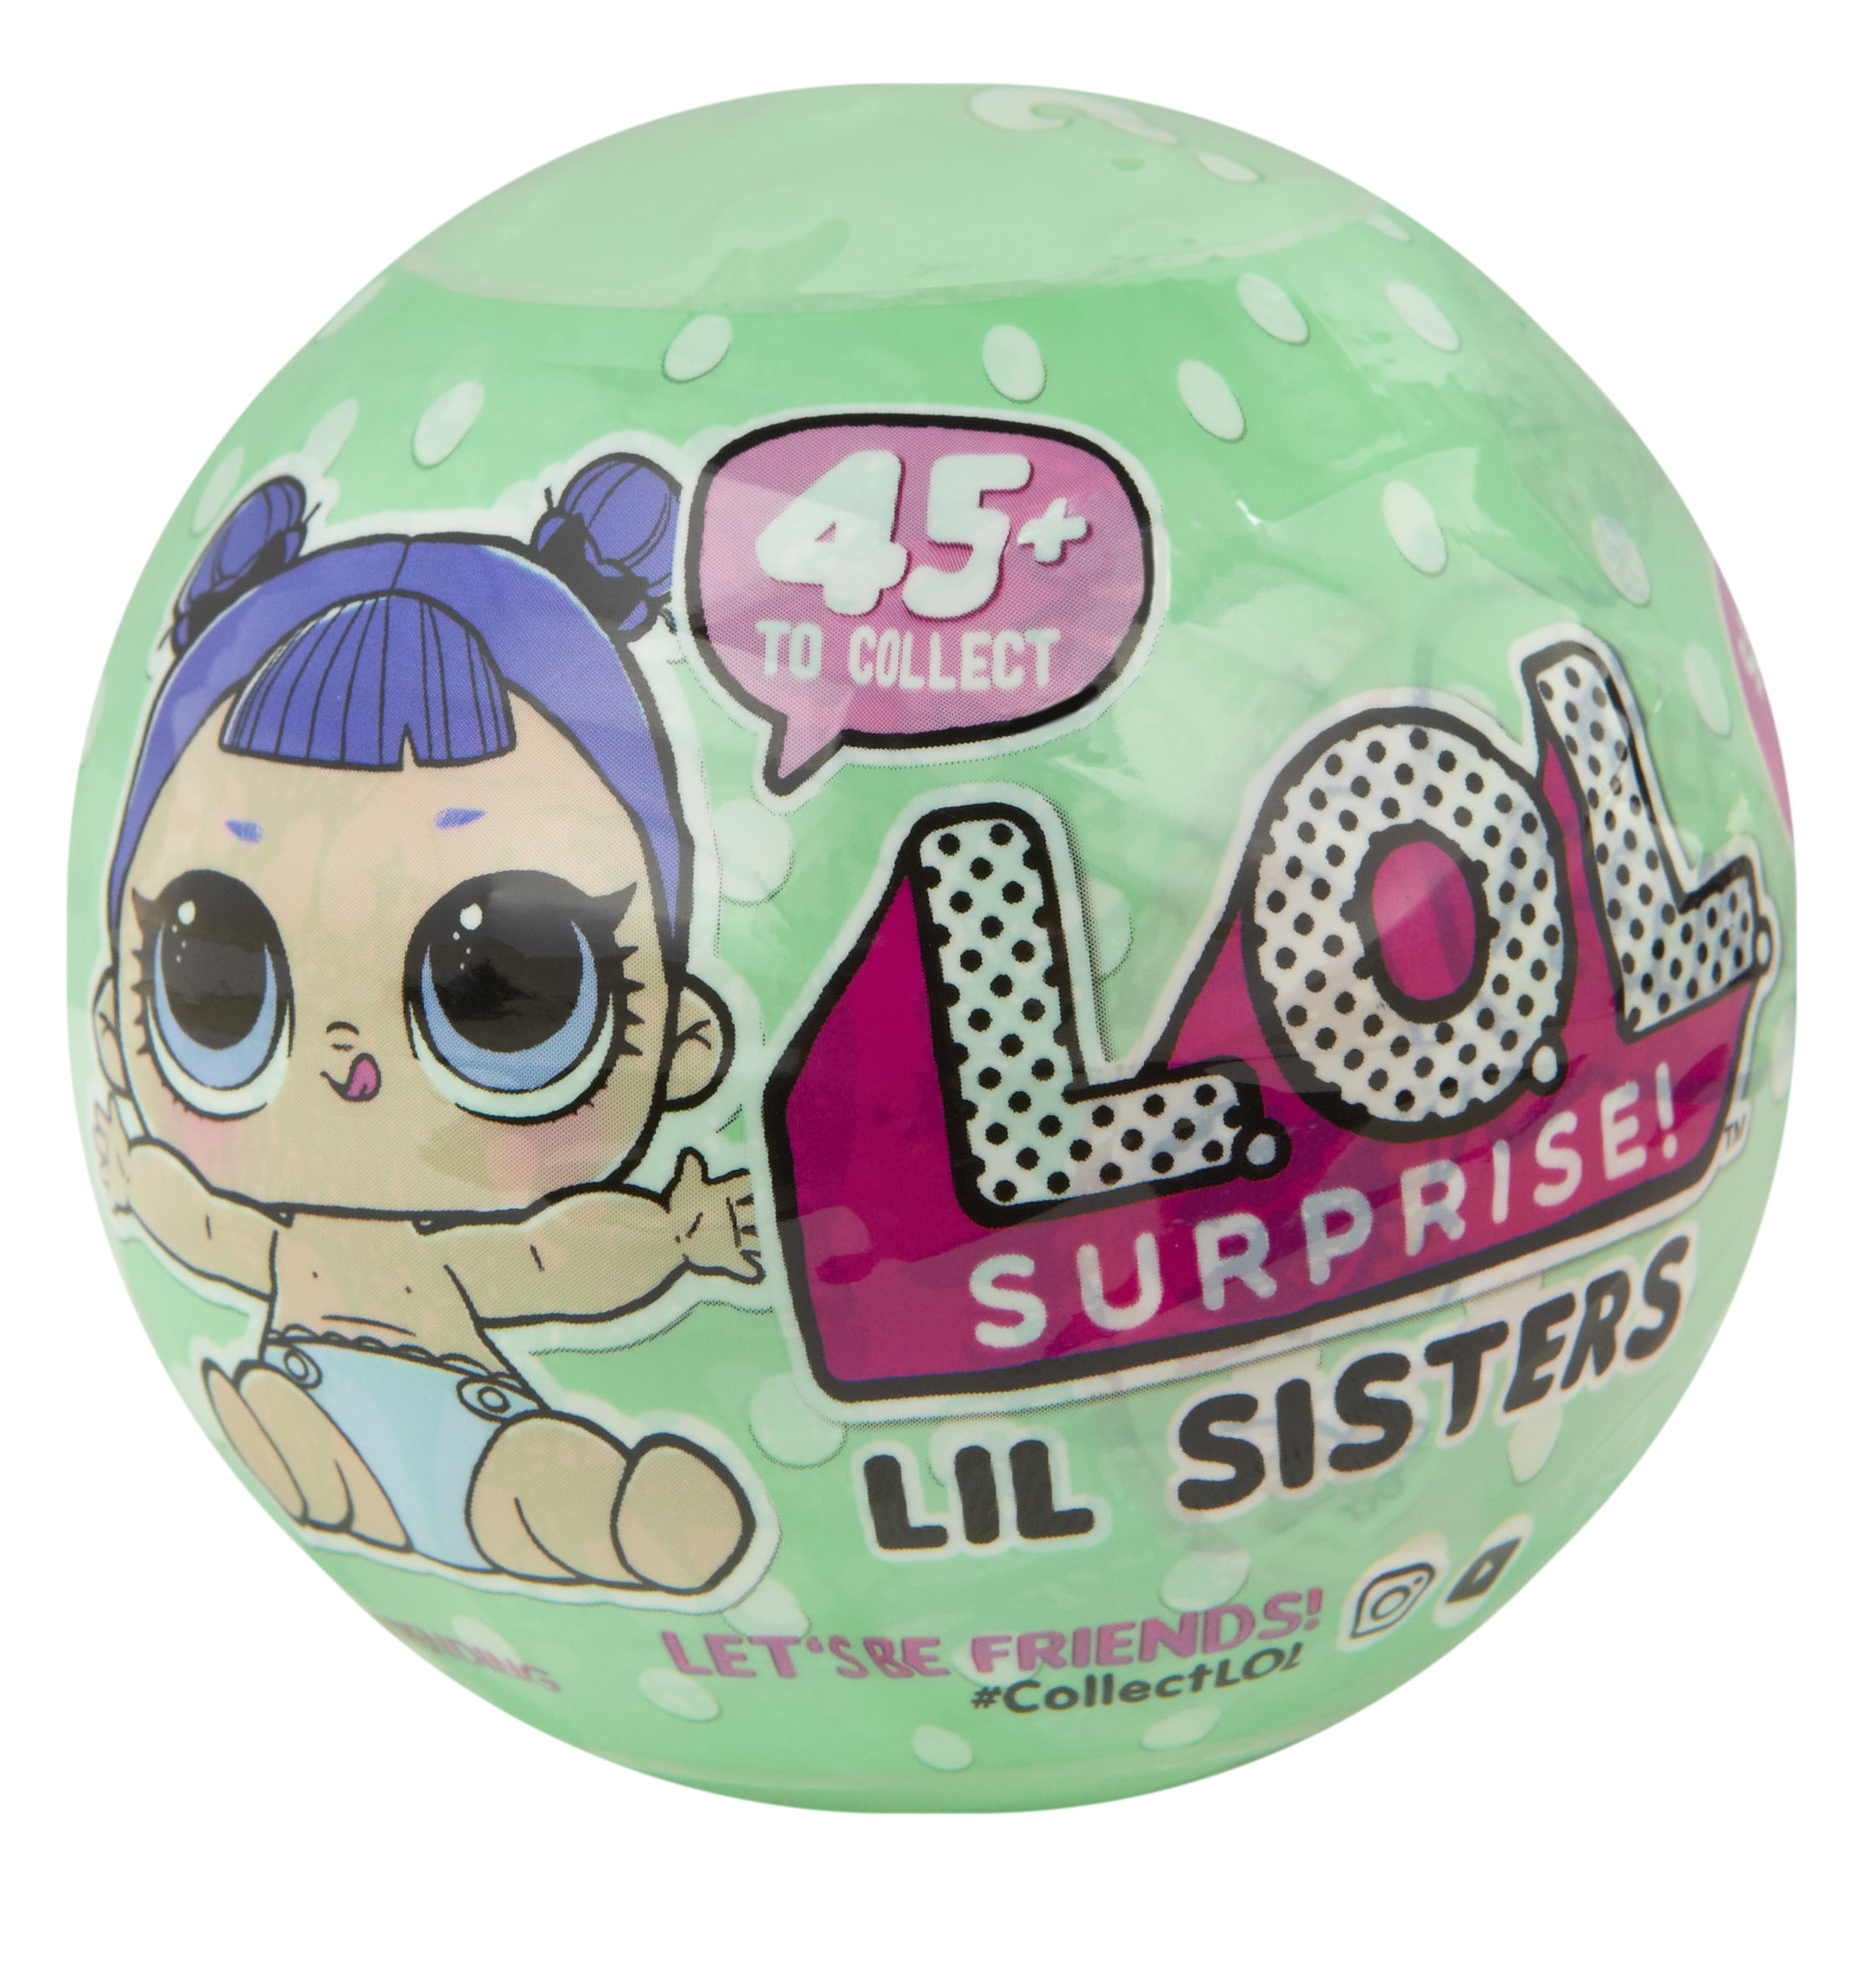 L.O.L. Surprise! Lil Sisters Doll Series 2 by MGA Entertainment, Inc.